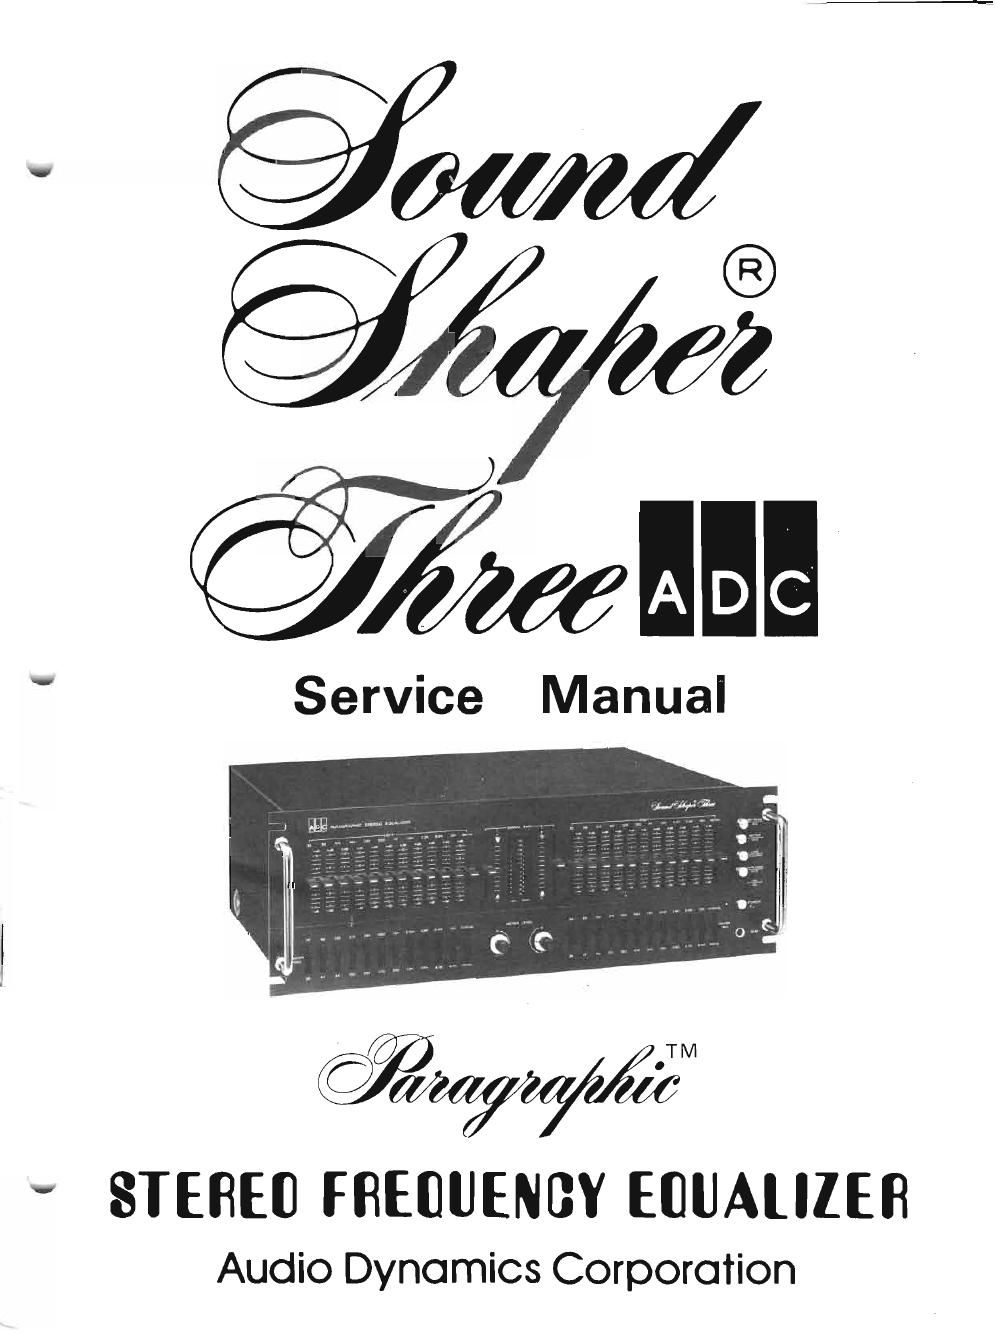 adc soundshaper three service manual